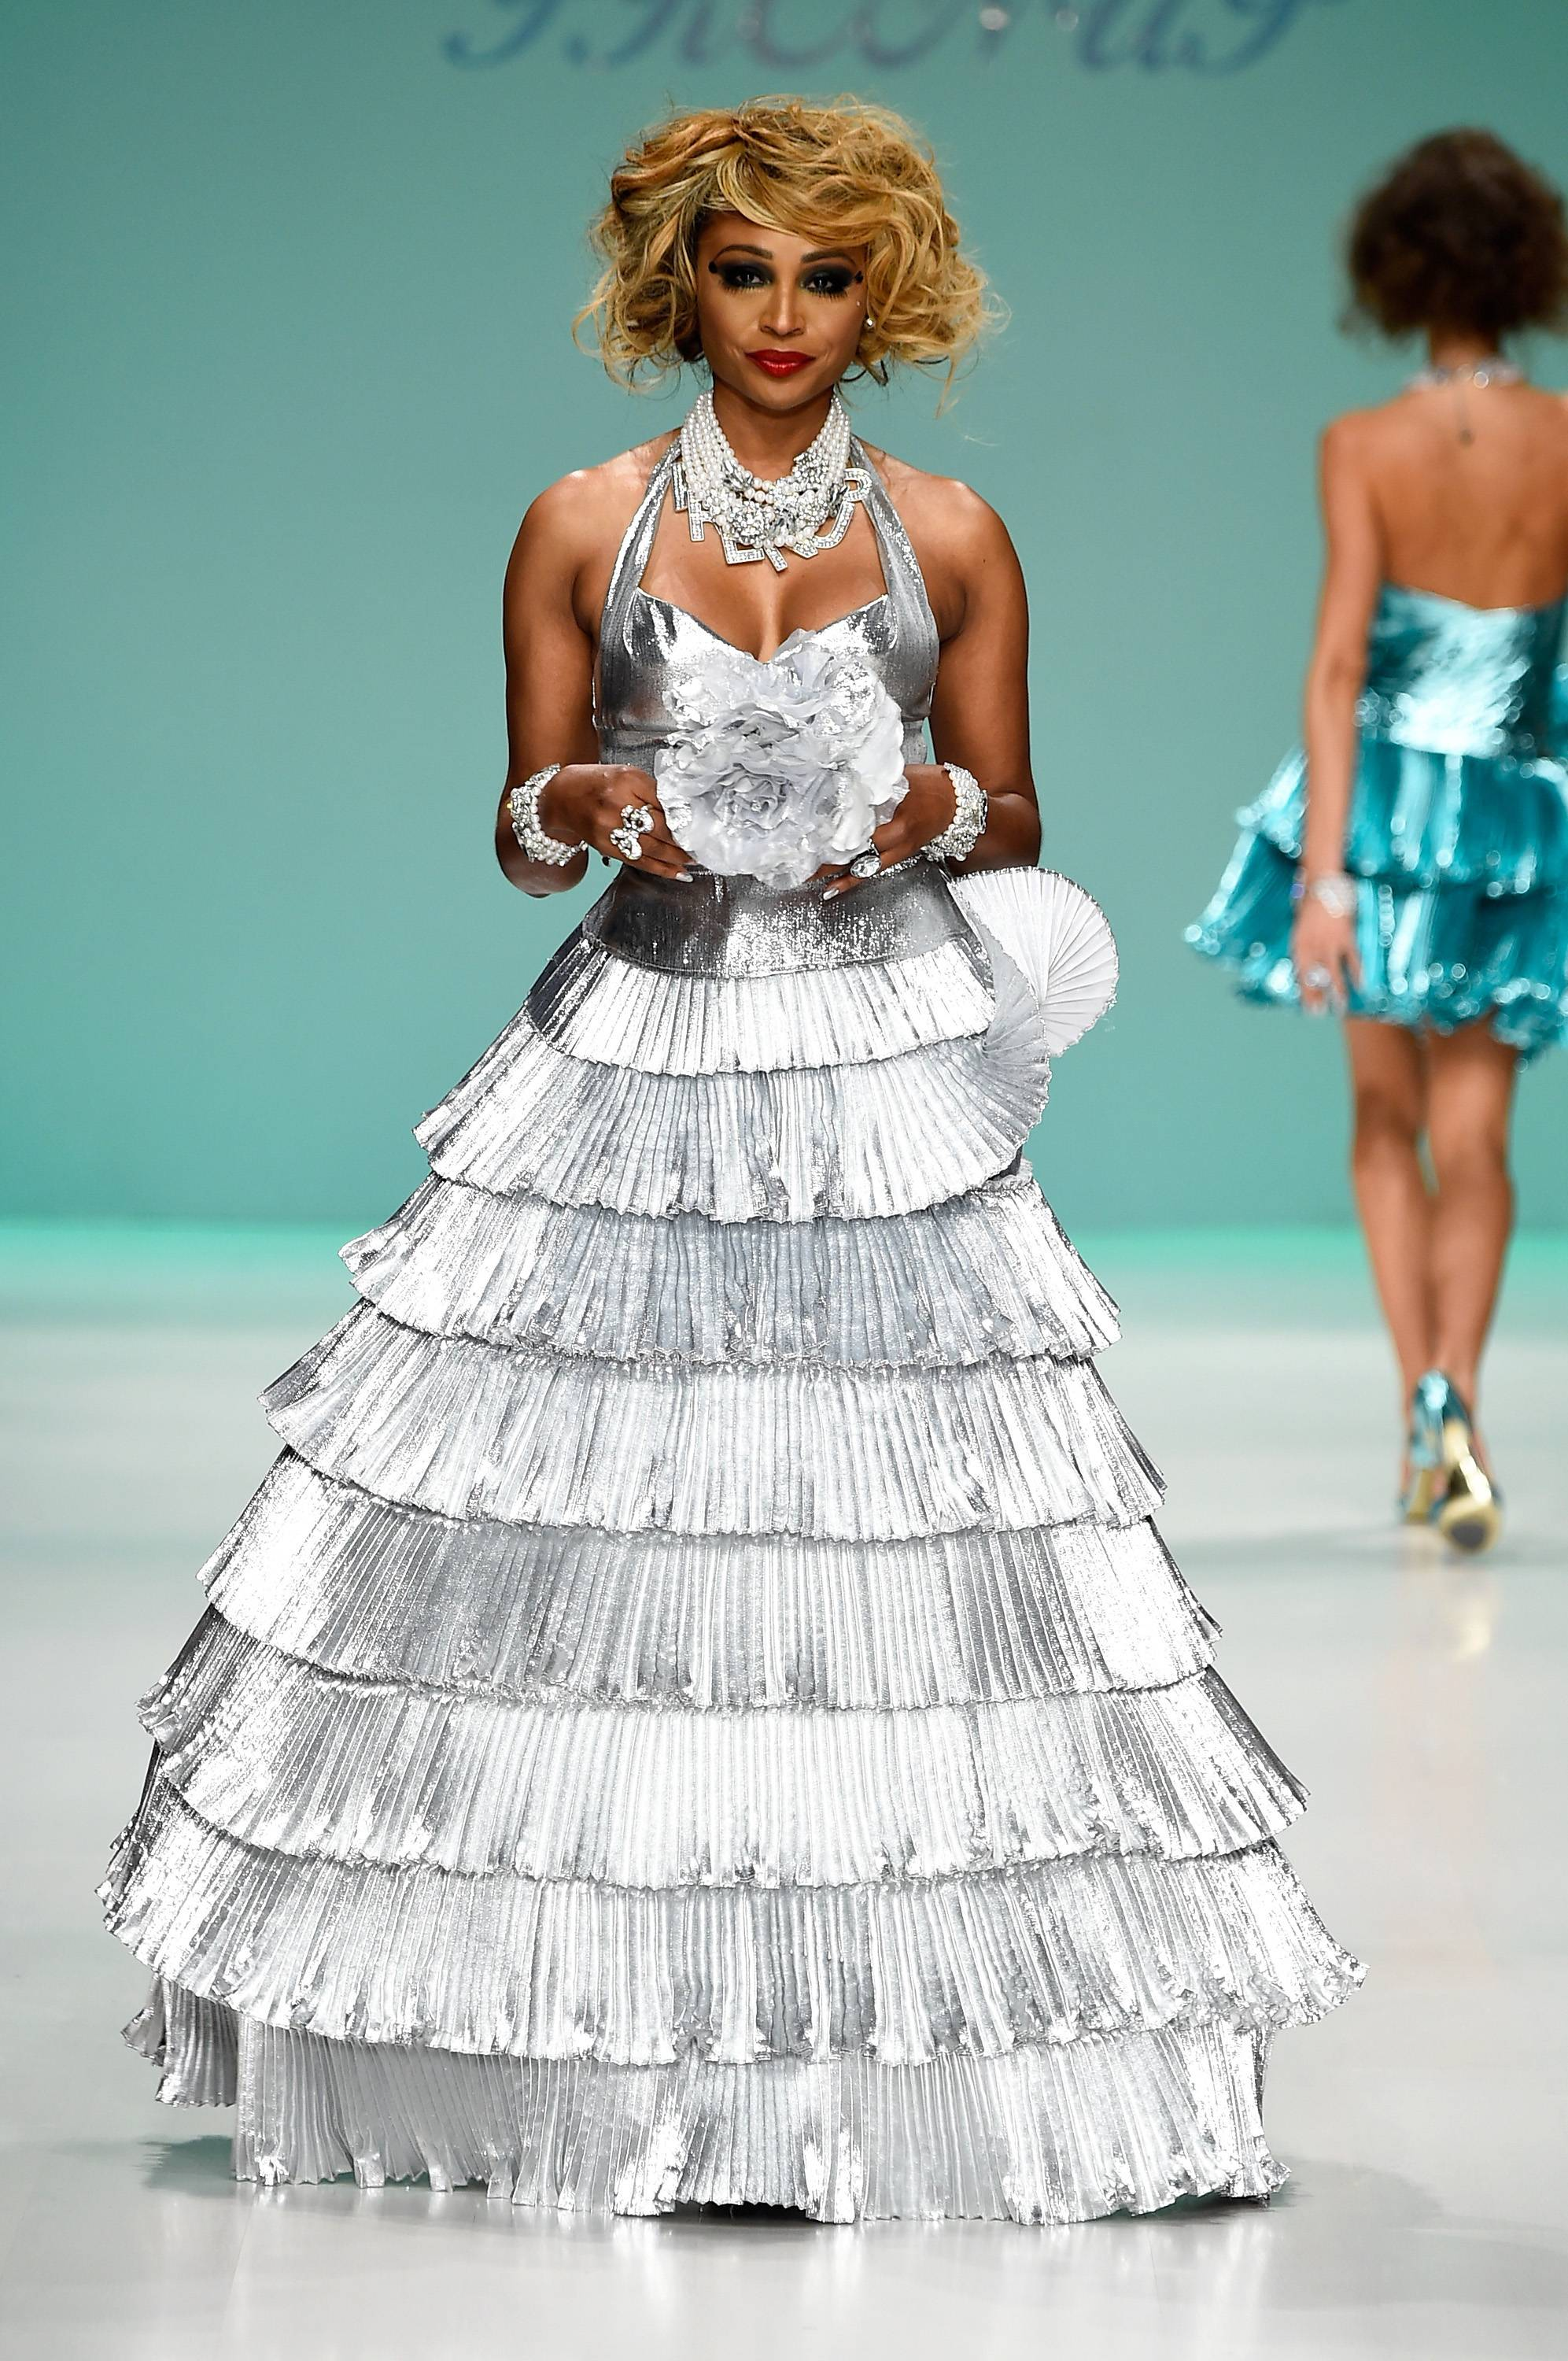 Cynthia Bailey Werqs! - Cynthia Bailey reminded us that she knows a thing or two about slaying runways. The Real Housewives of Atlanta star worked the runway at the Betsey Johnson fashion show during Mercedes-Benz Fashion Week Spring 2015 this week. YAAAAAASSSSSSS!(Photo: Frazer Harrison/Getty Images for Mercedes-Benz Fashion Week)